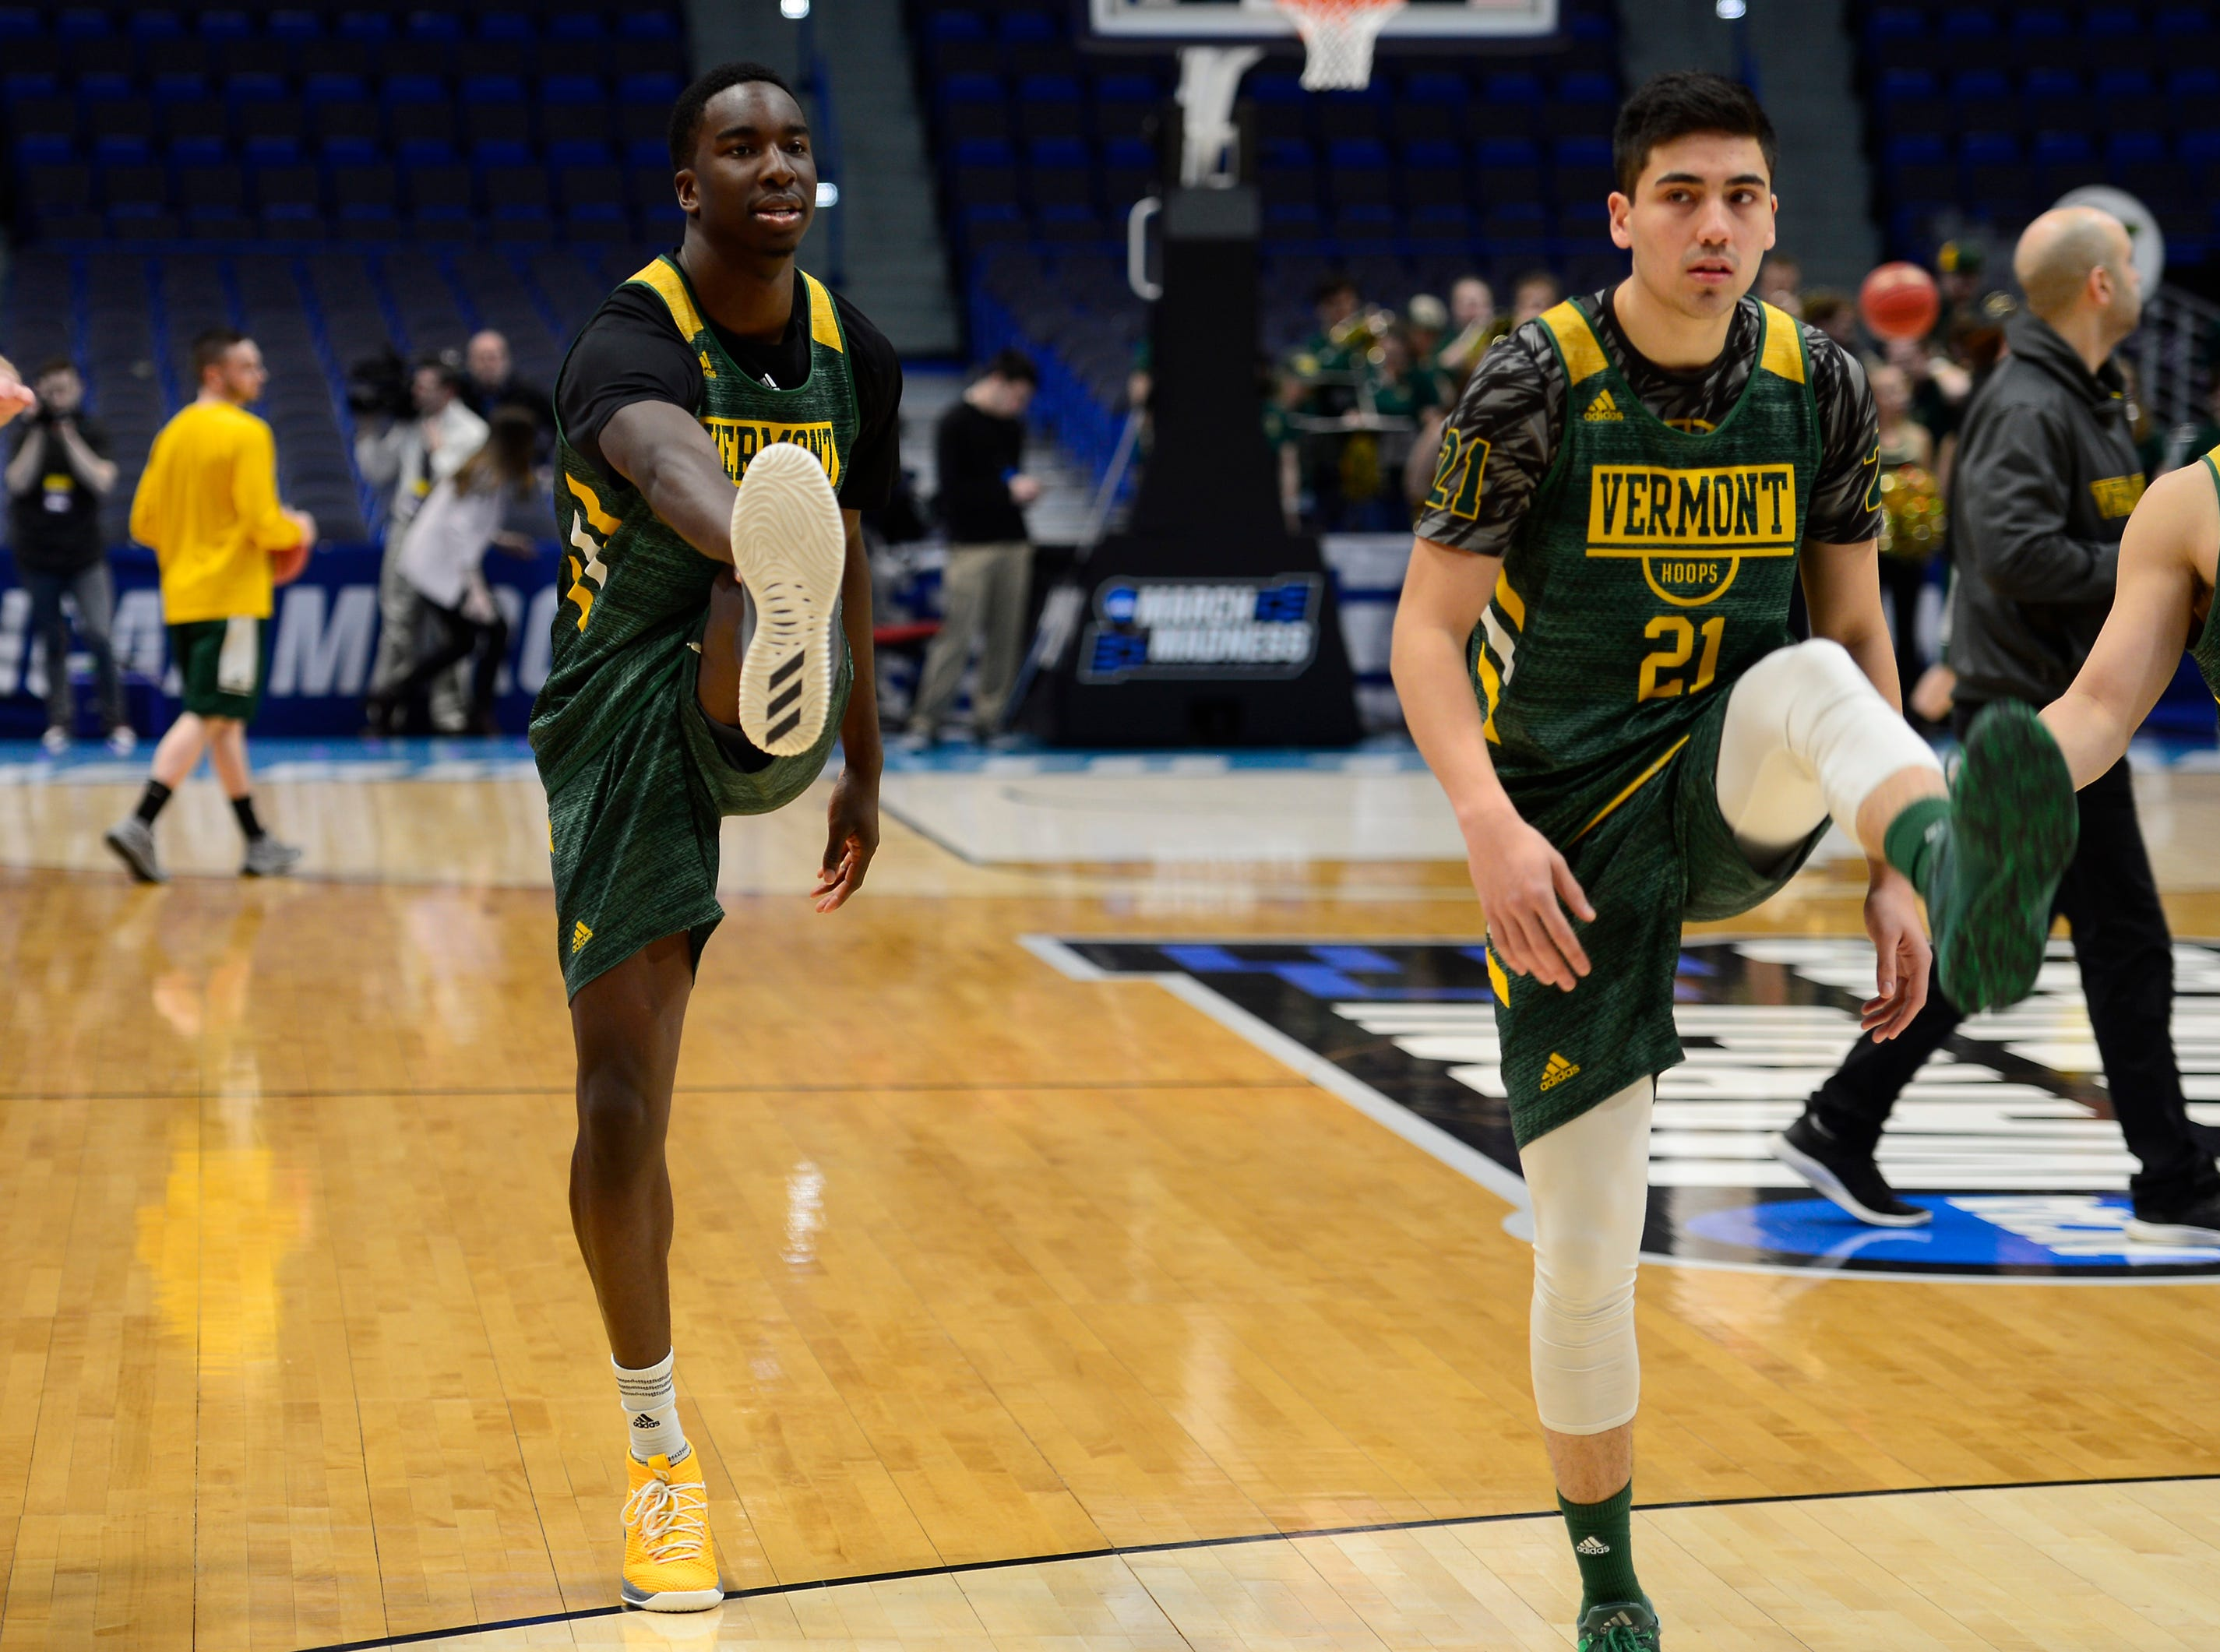 Vermont's Ra Kpedi, left, and Everett Duncan stretch before practice Wednesday at the XL Center in Hartford, Connecticut.